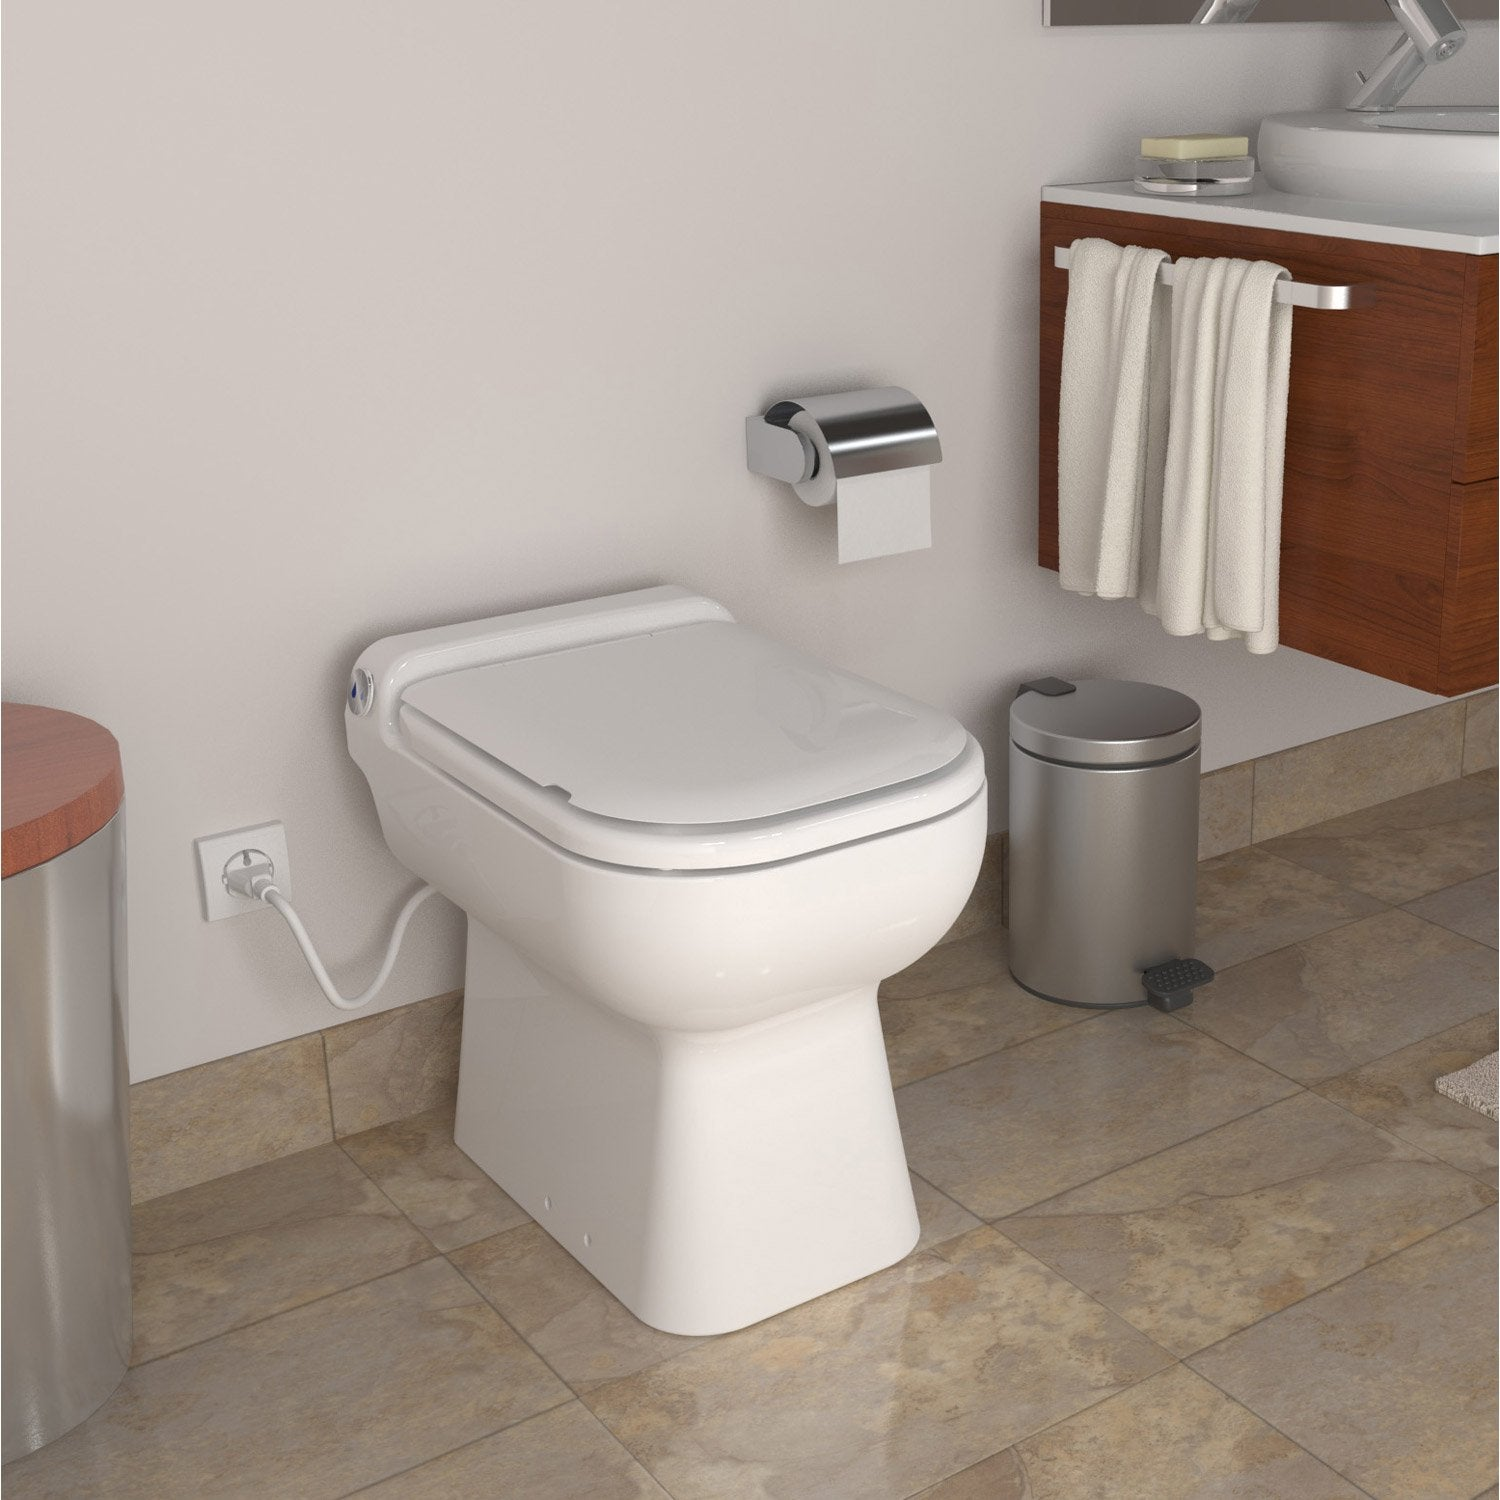 Wc poser avec broyeur int gr turbo design leroy merlin - Comment installer un wc broyeur ...